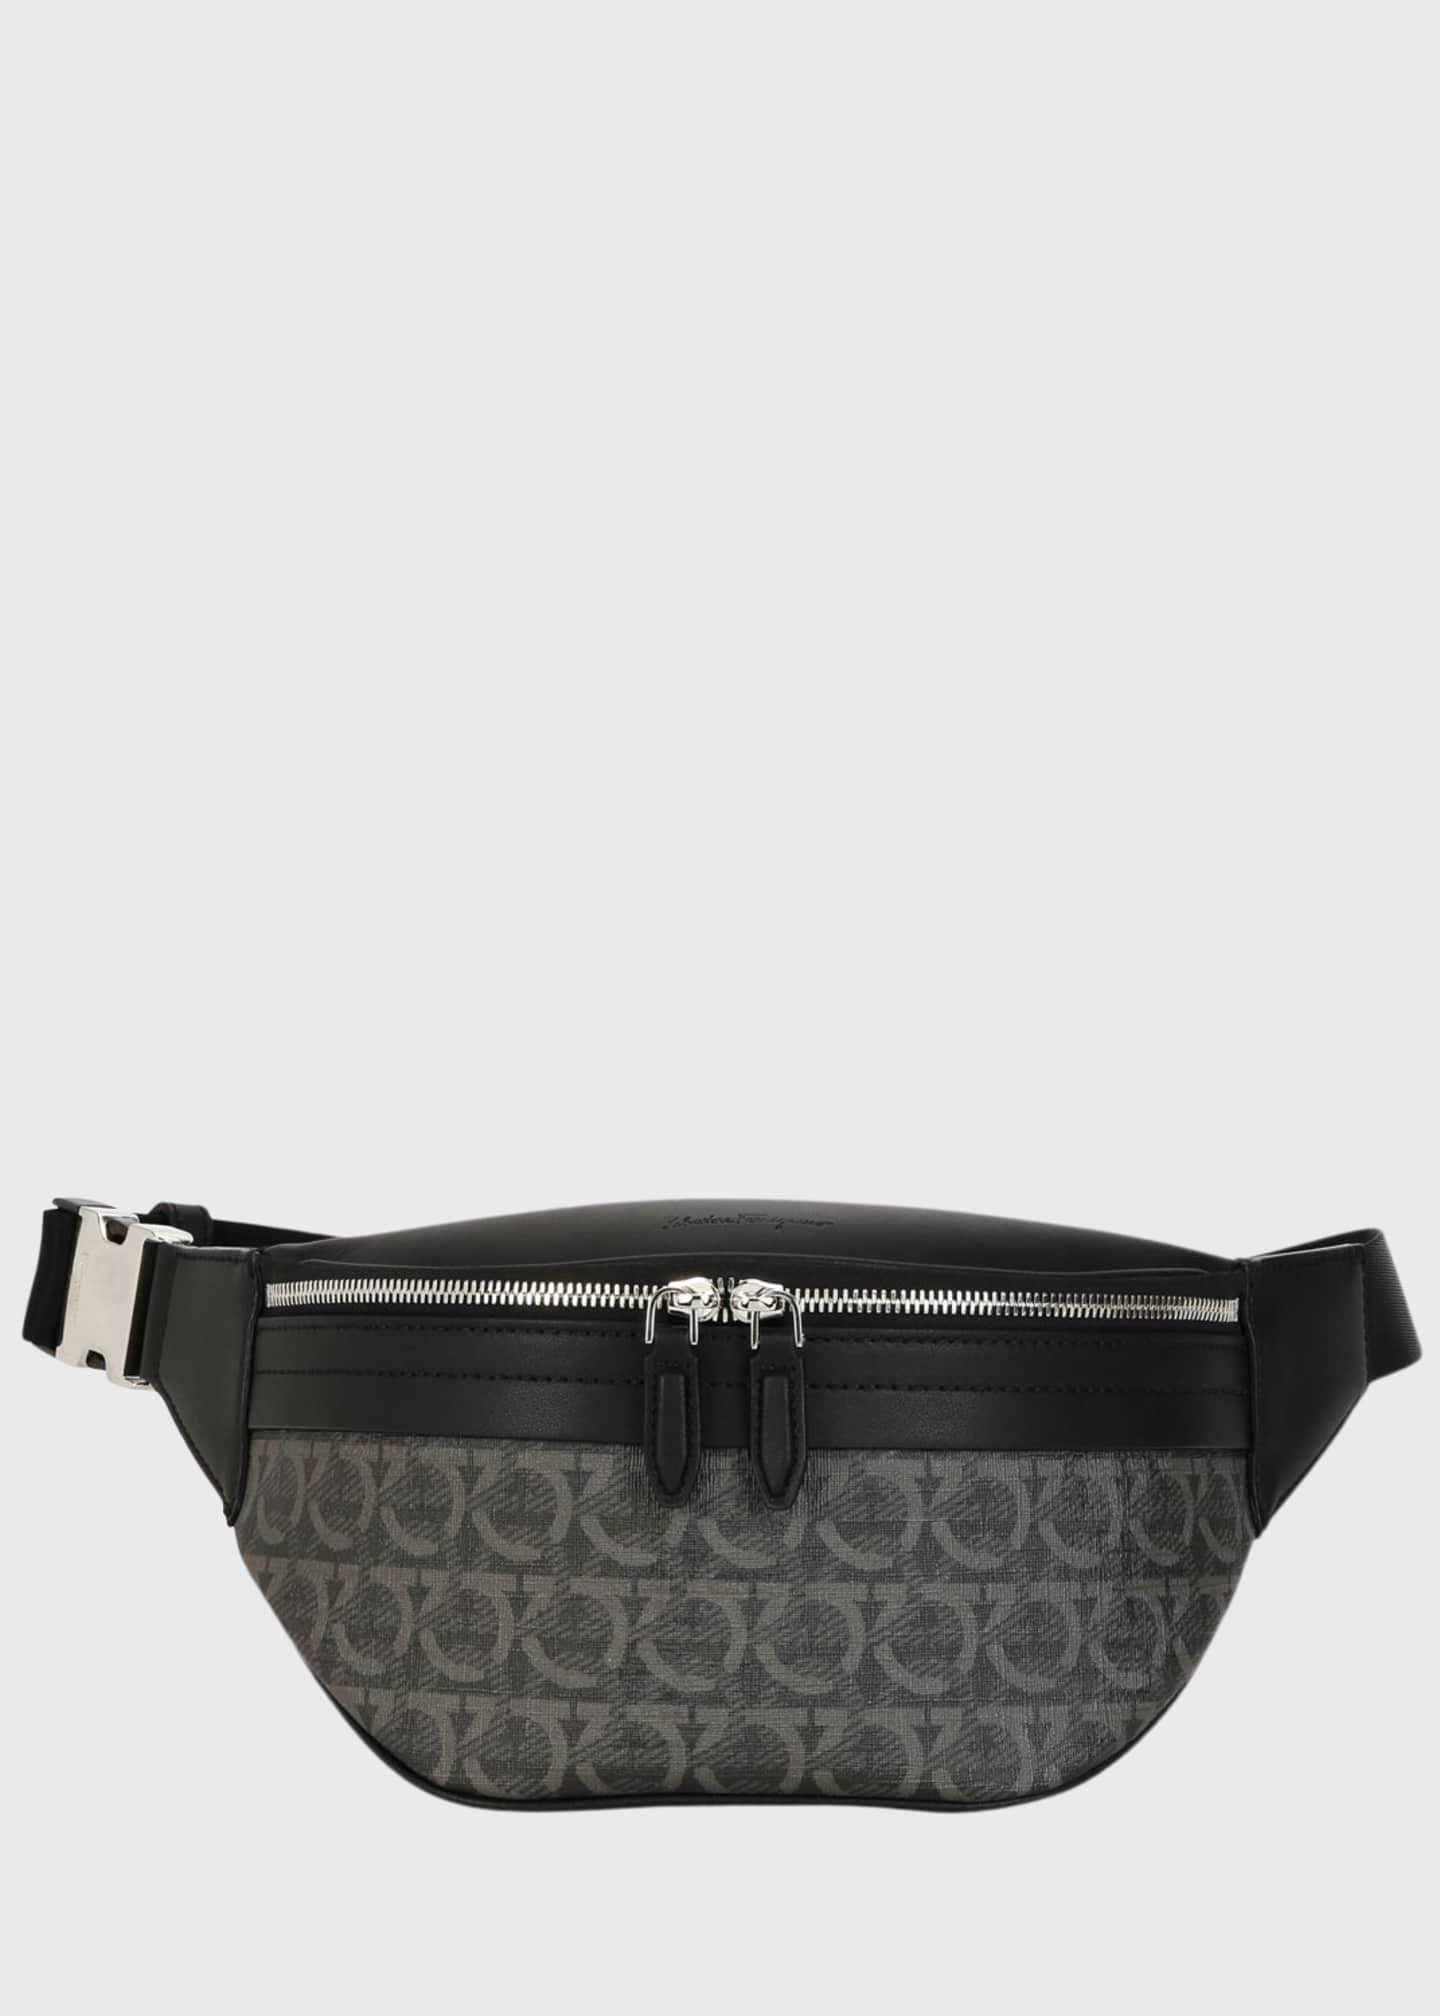 Salvatore Ferragamo Men's Gancini-Print Leather Belt Bag/Fanny